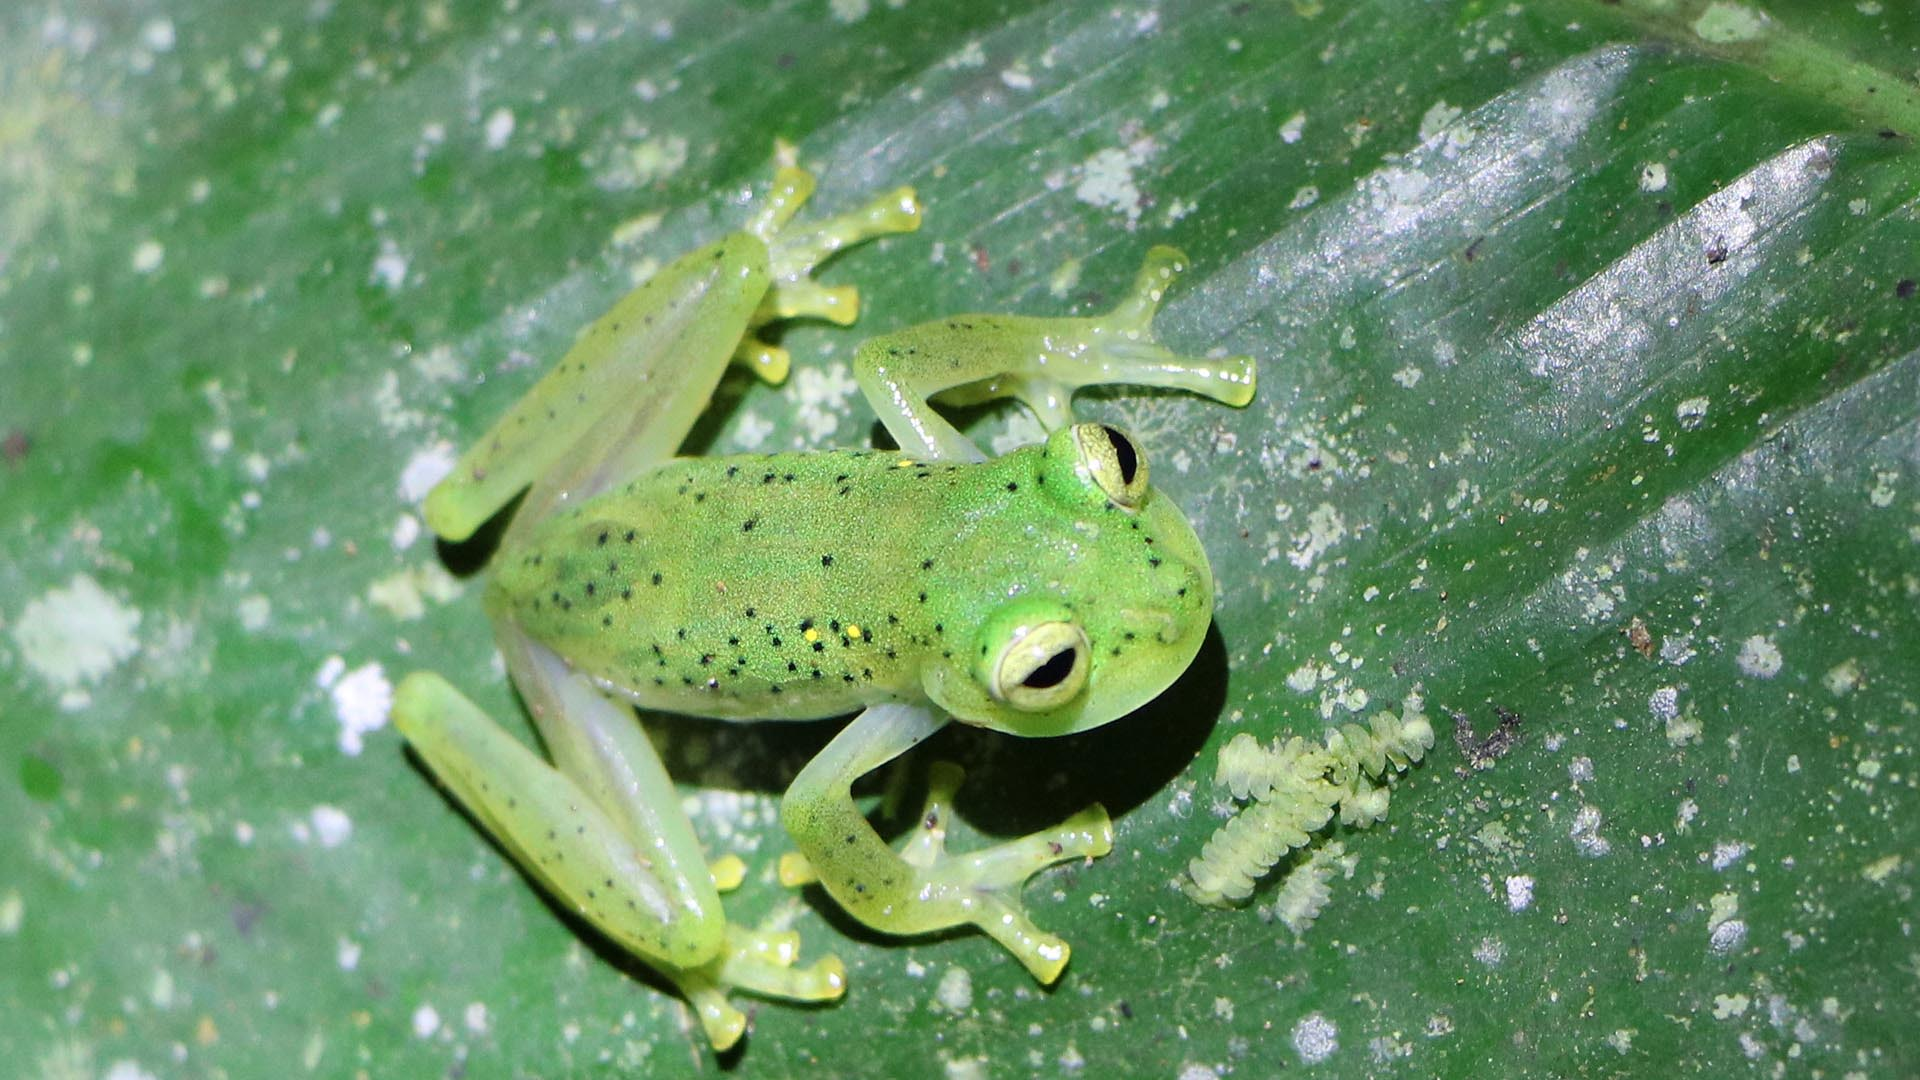 Mindo glass frog